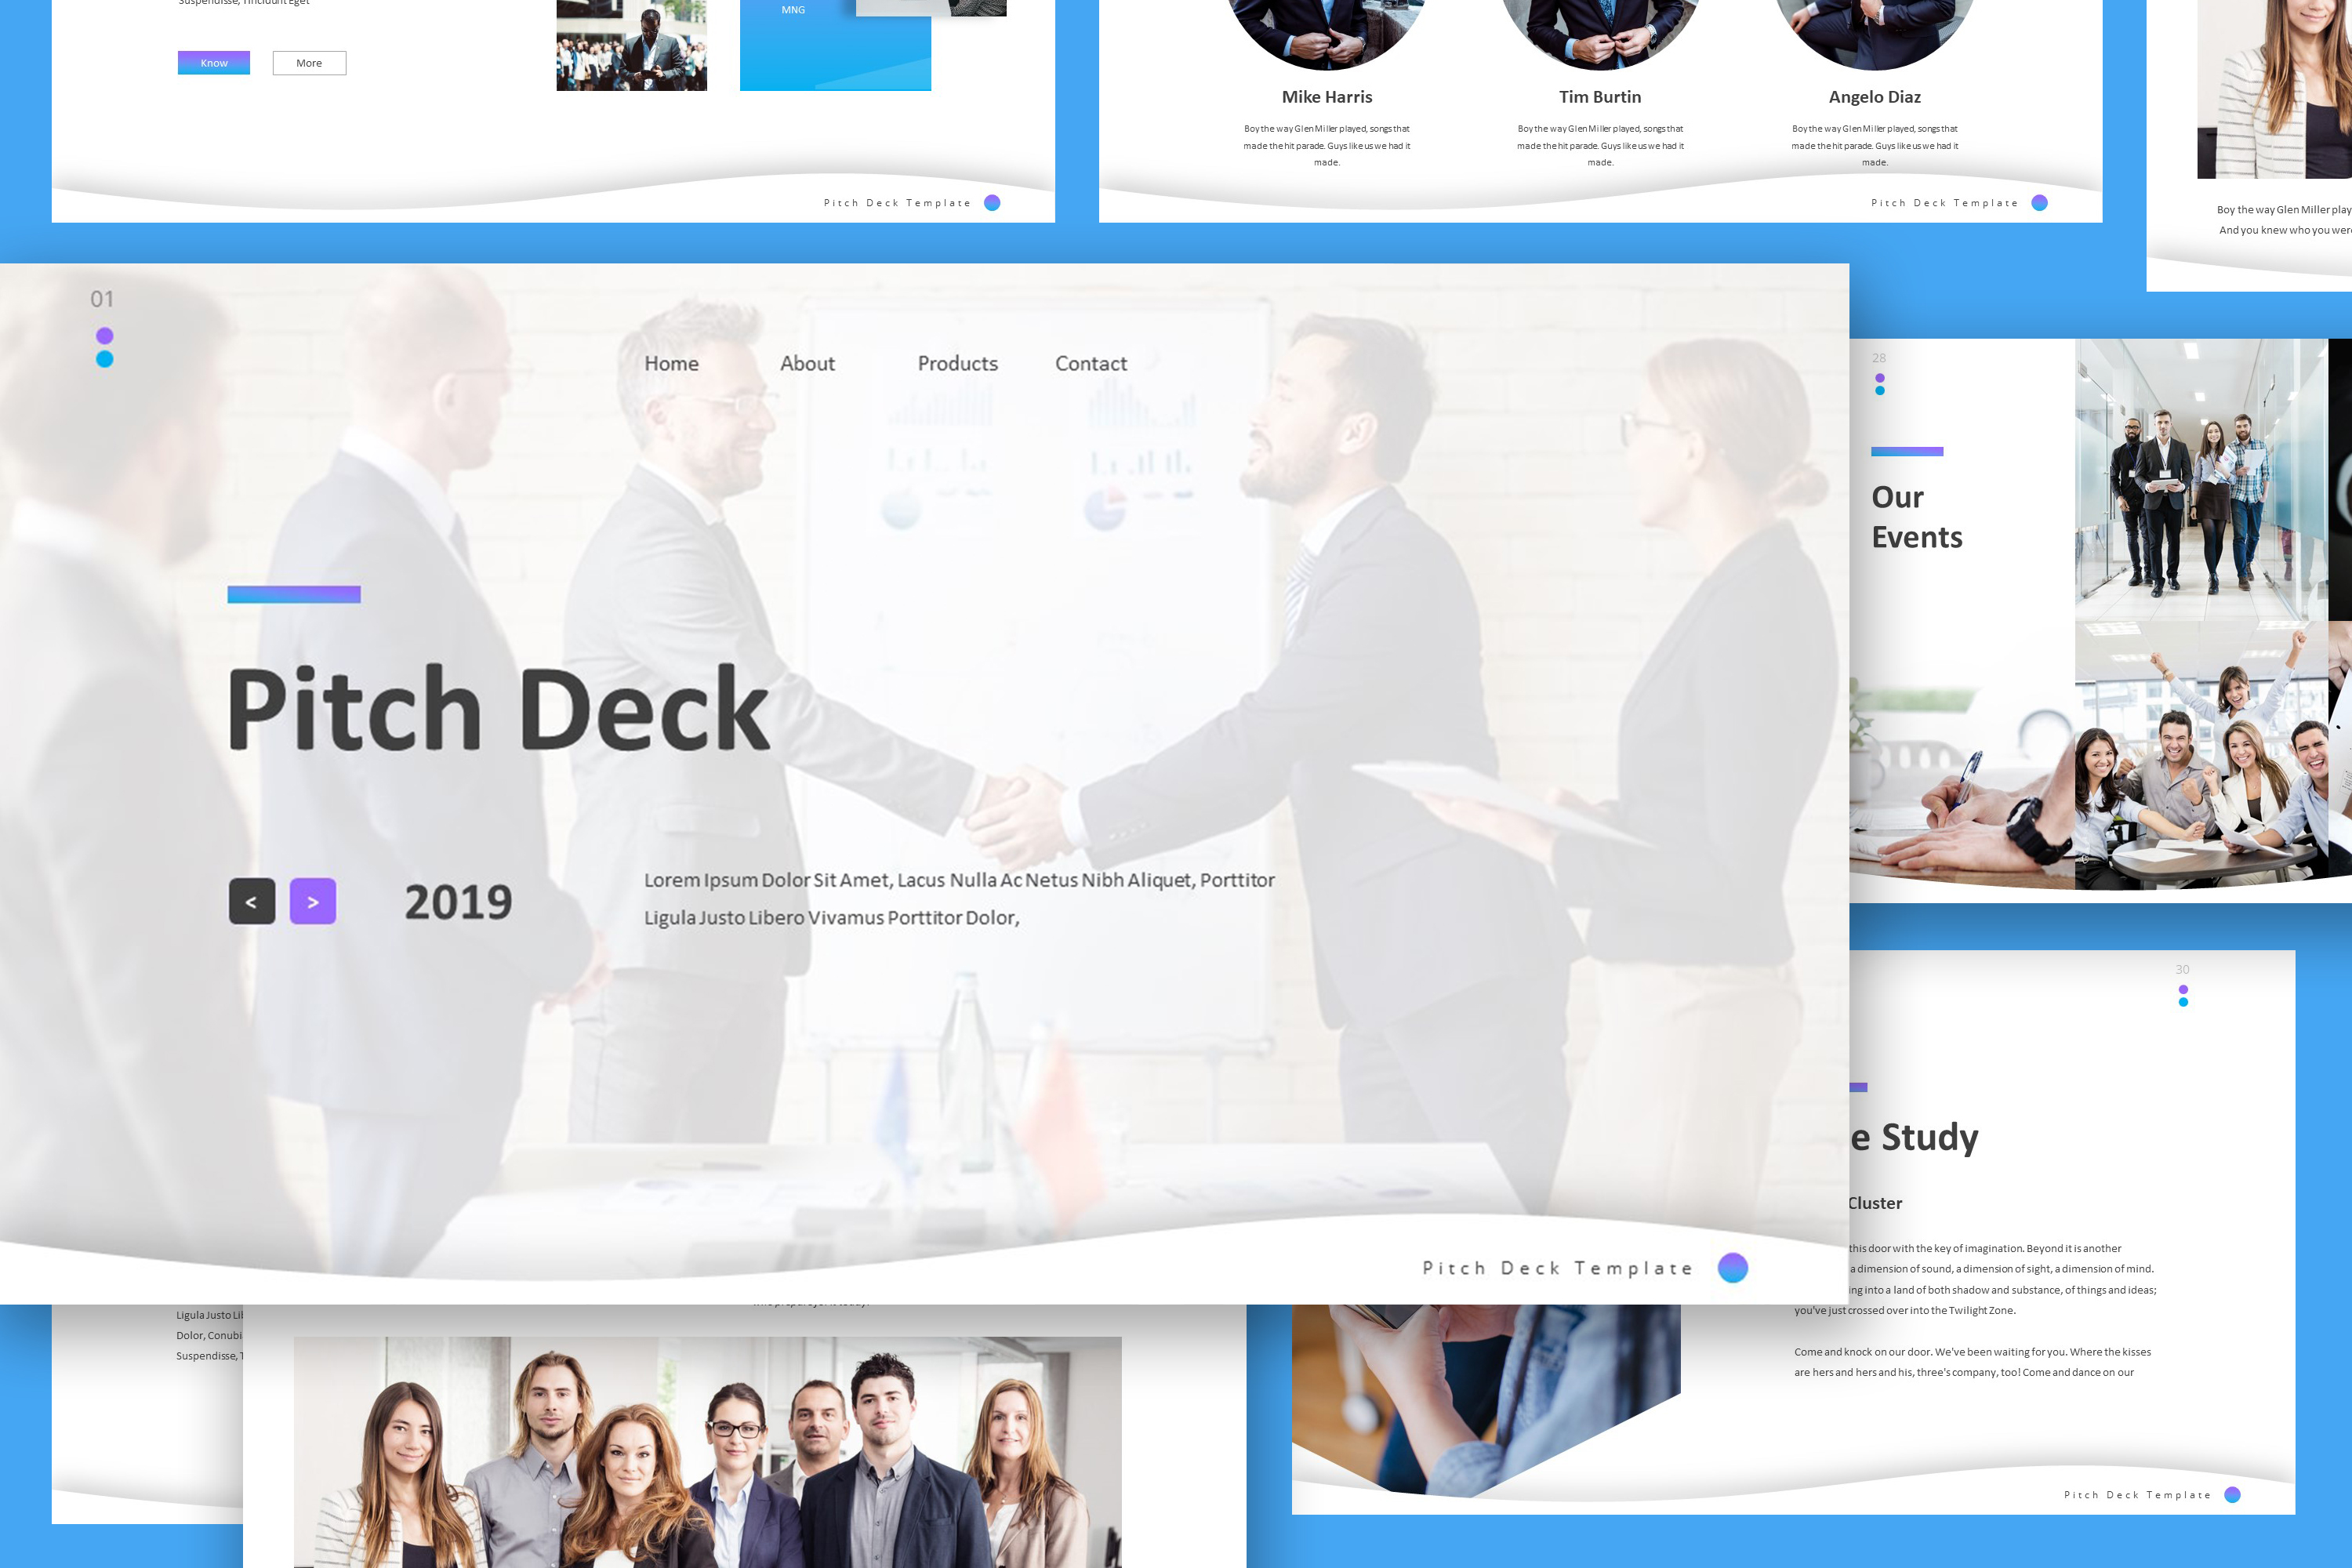 Pitch Deck Powerpoint Template example image 4